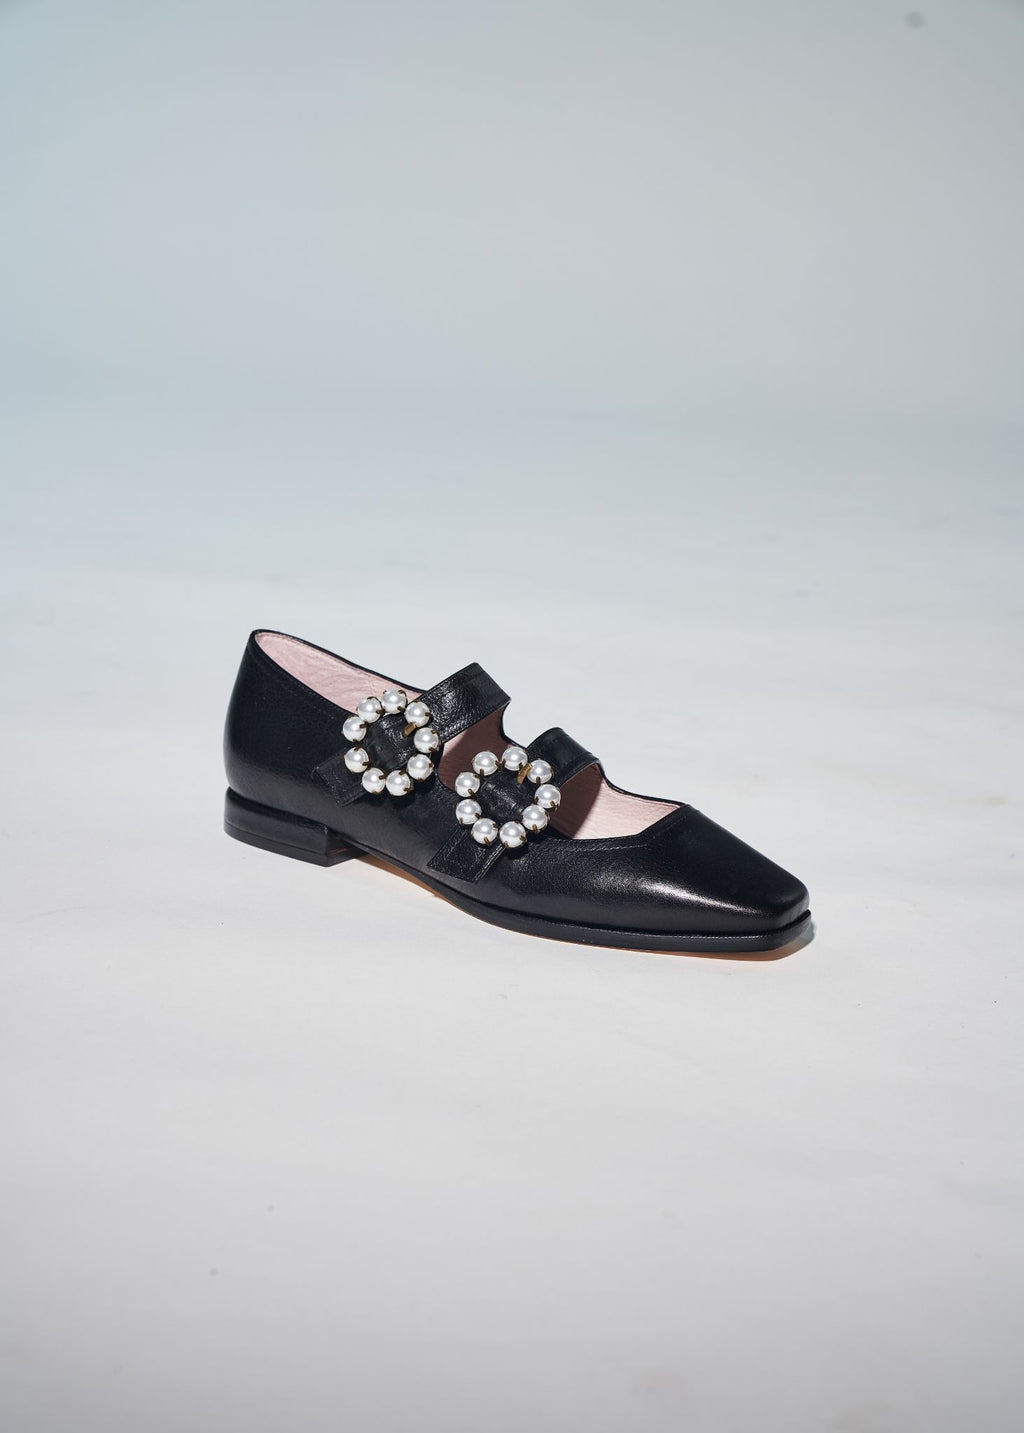 Molly black double strap flat with pearl buckle detail.